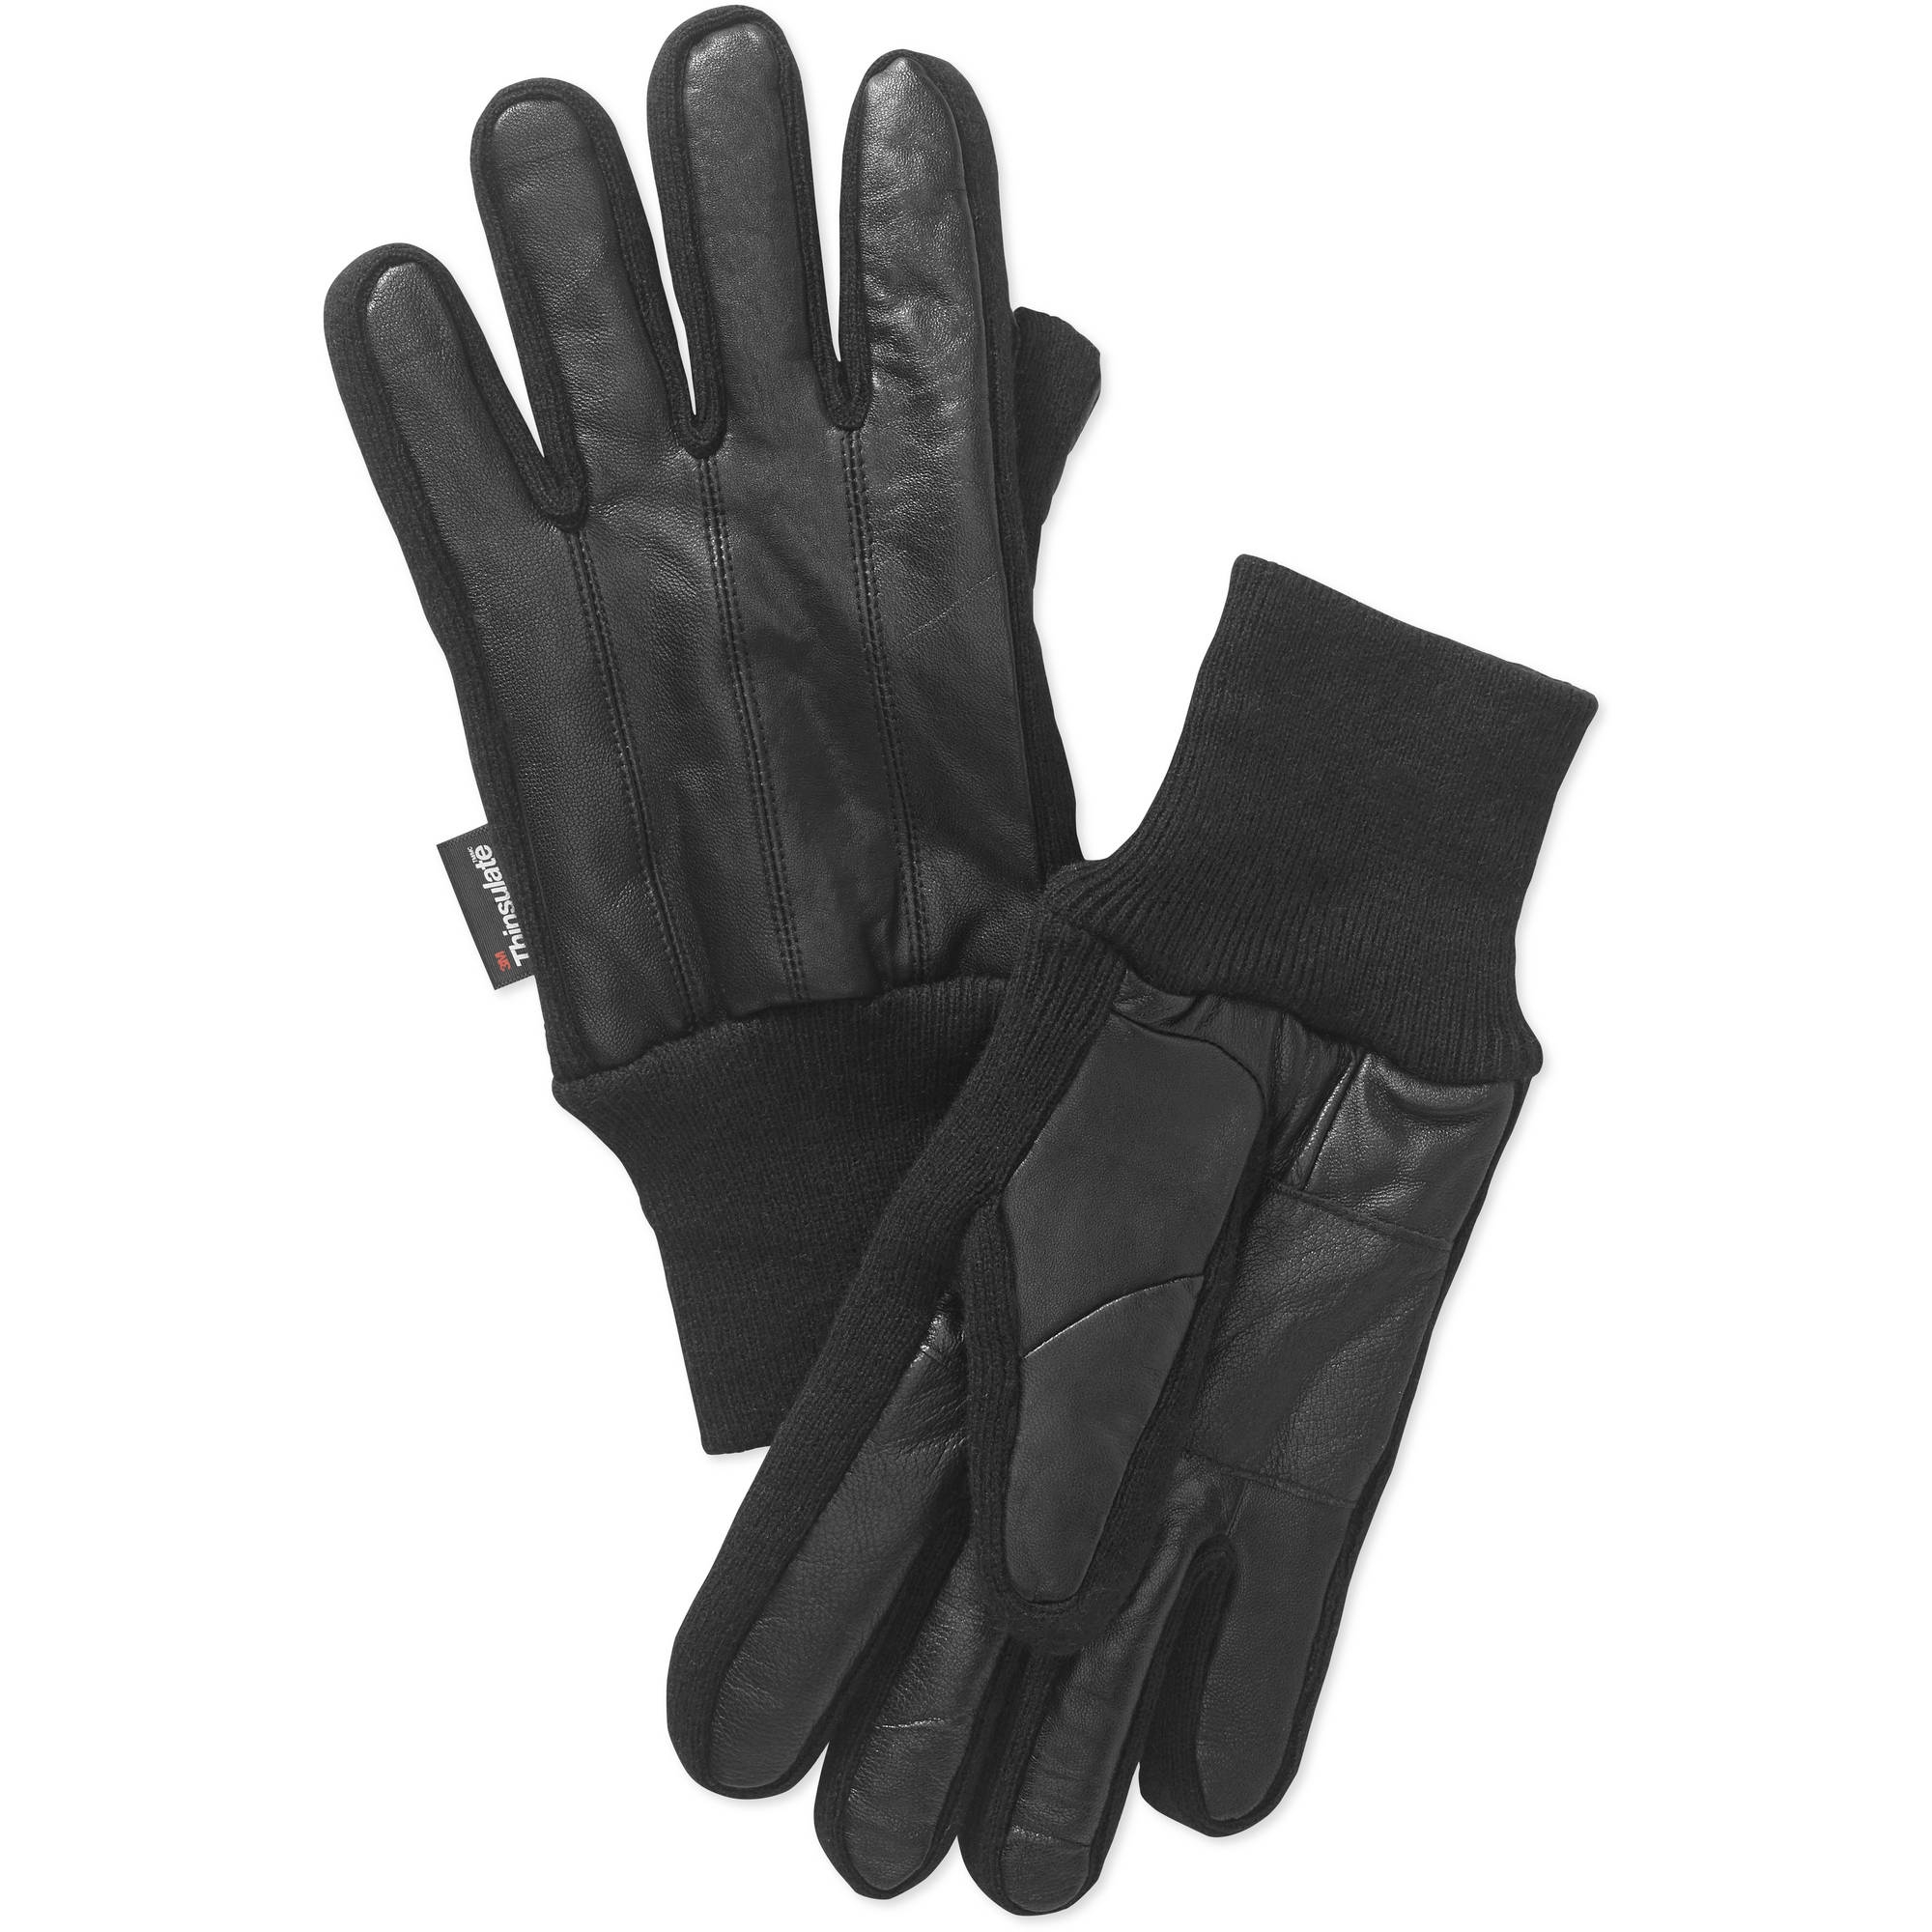 Insulated leather motorcycle gloves - George Men S Sandwich Glove